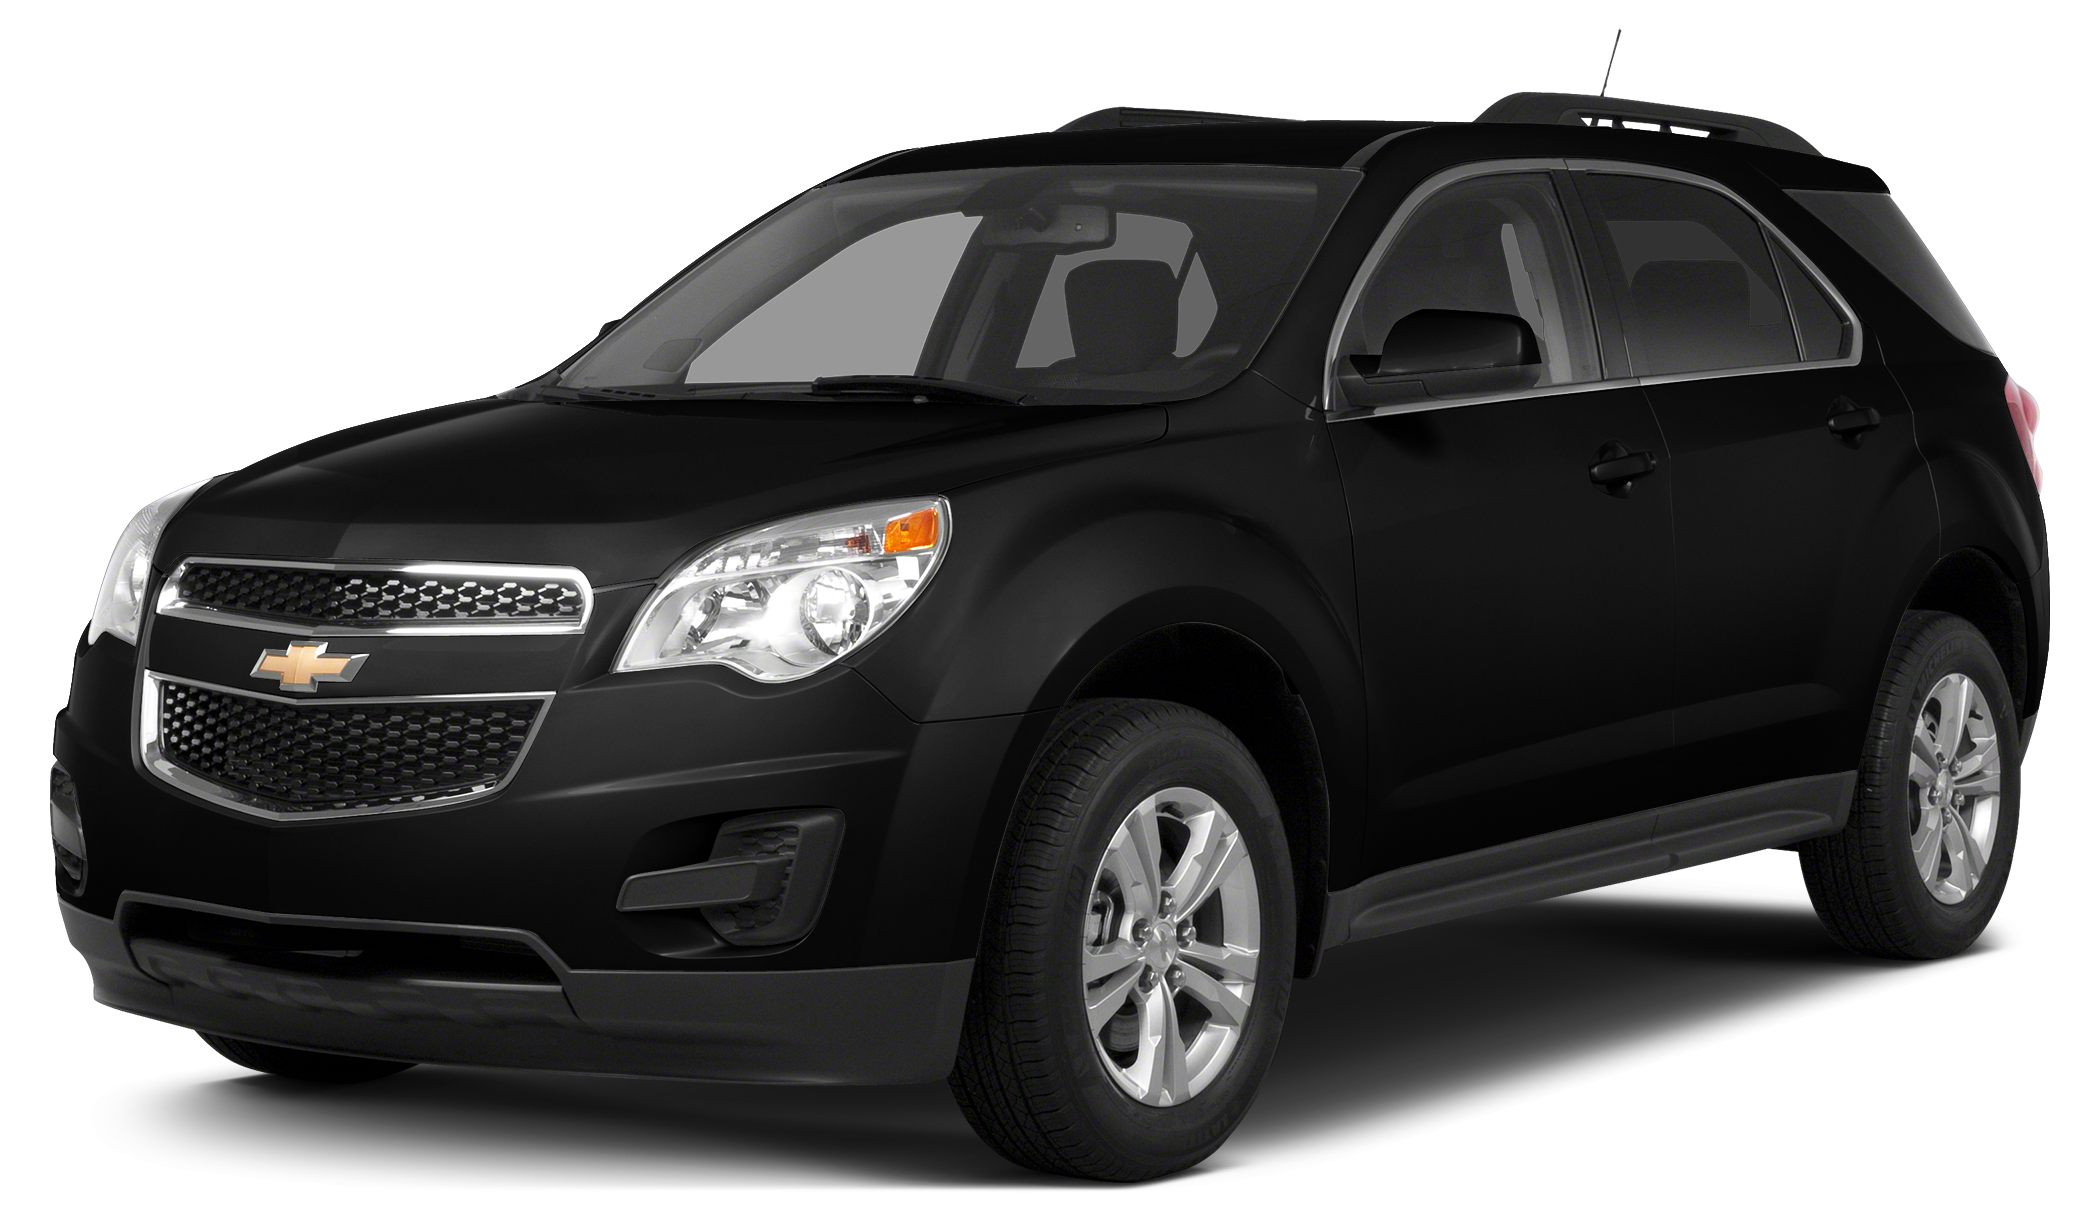 2013 Chevrolet Equinox 2LT Certified just serviced by us This one owner AWD has full power options